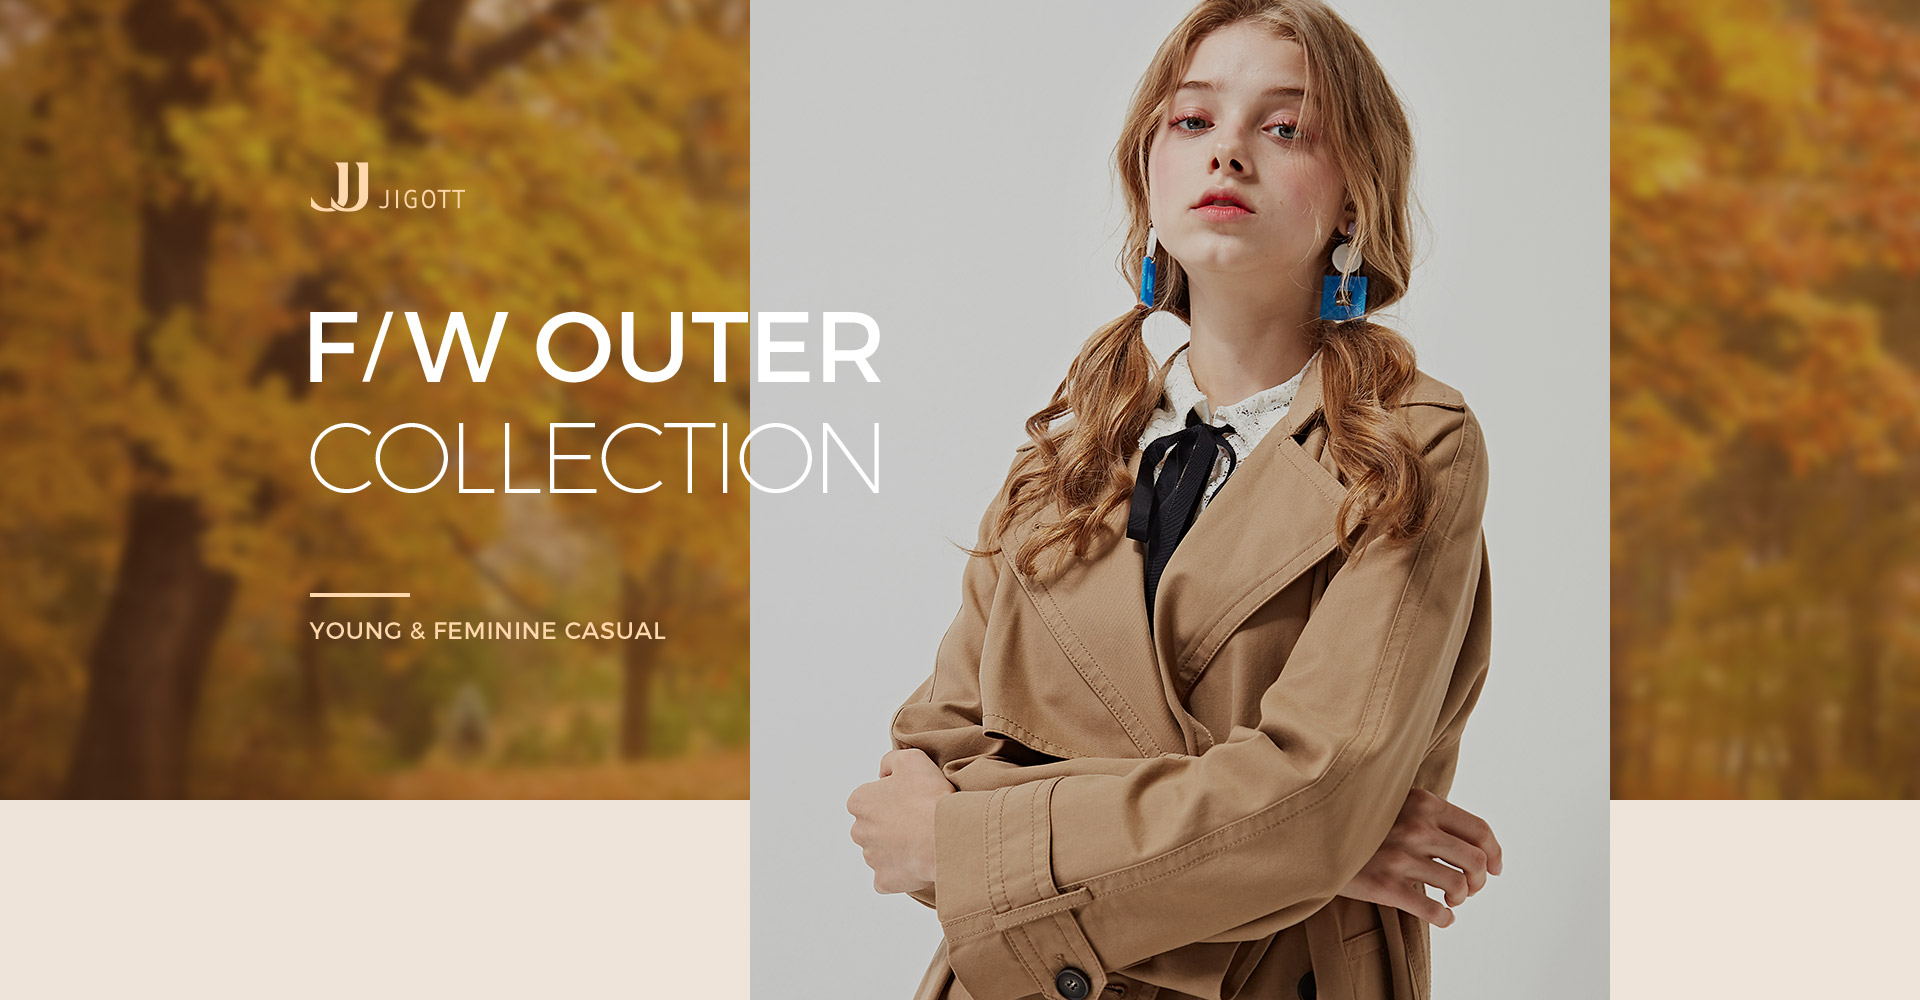 FW OUTER COLLECTION, YOUNG ,FEMININE, CASUAL,JJ jigott ,지고트,babafashion,baba,fashion,outer